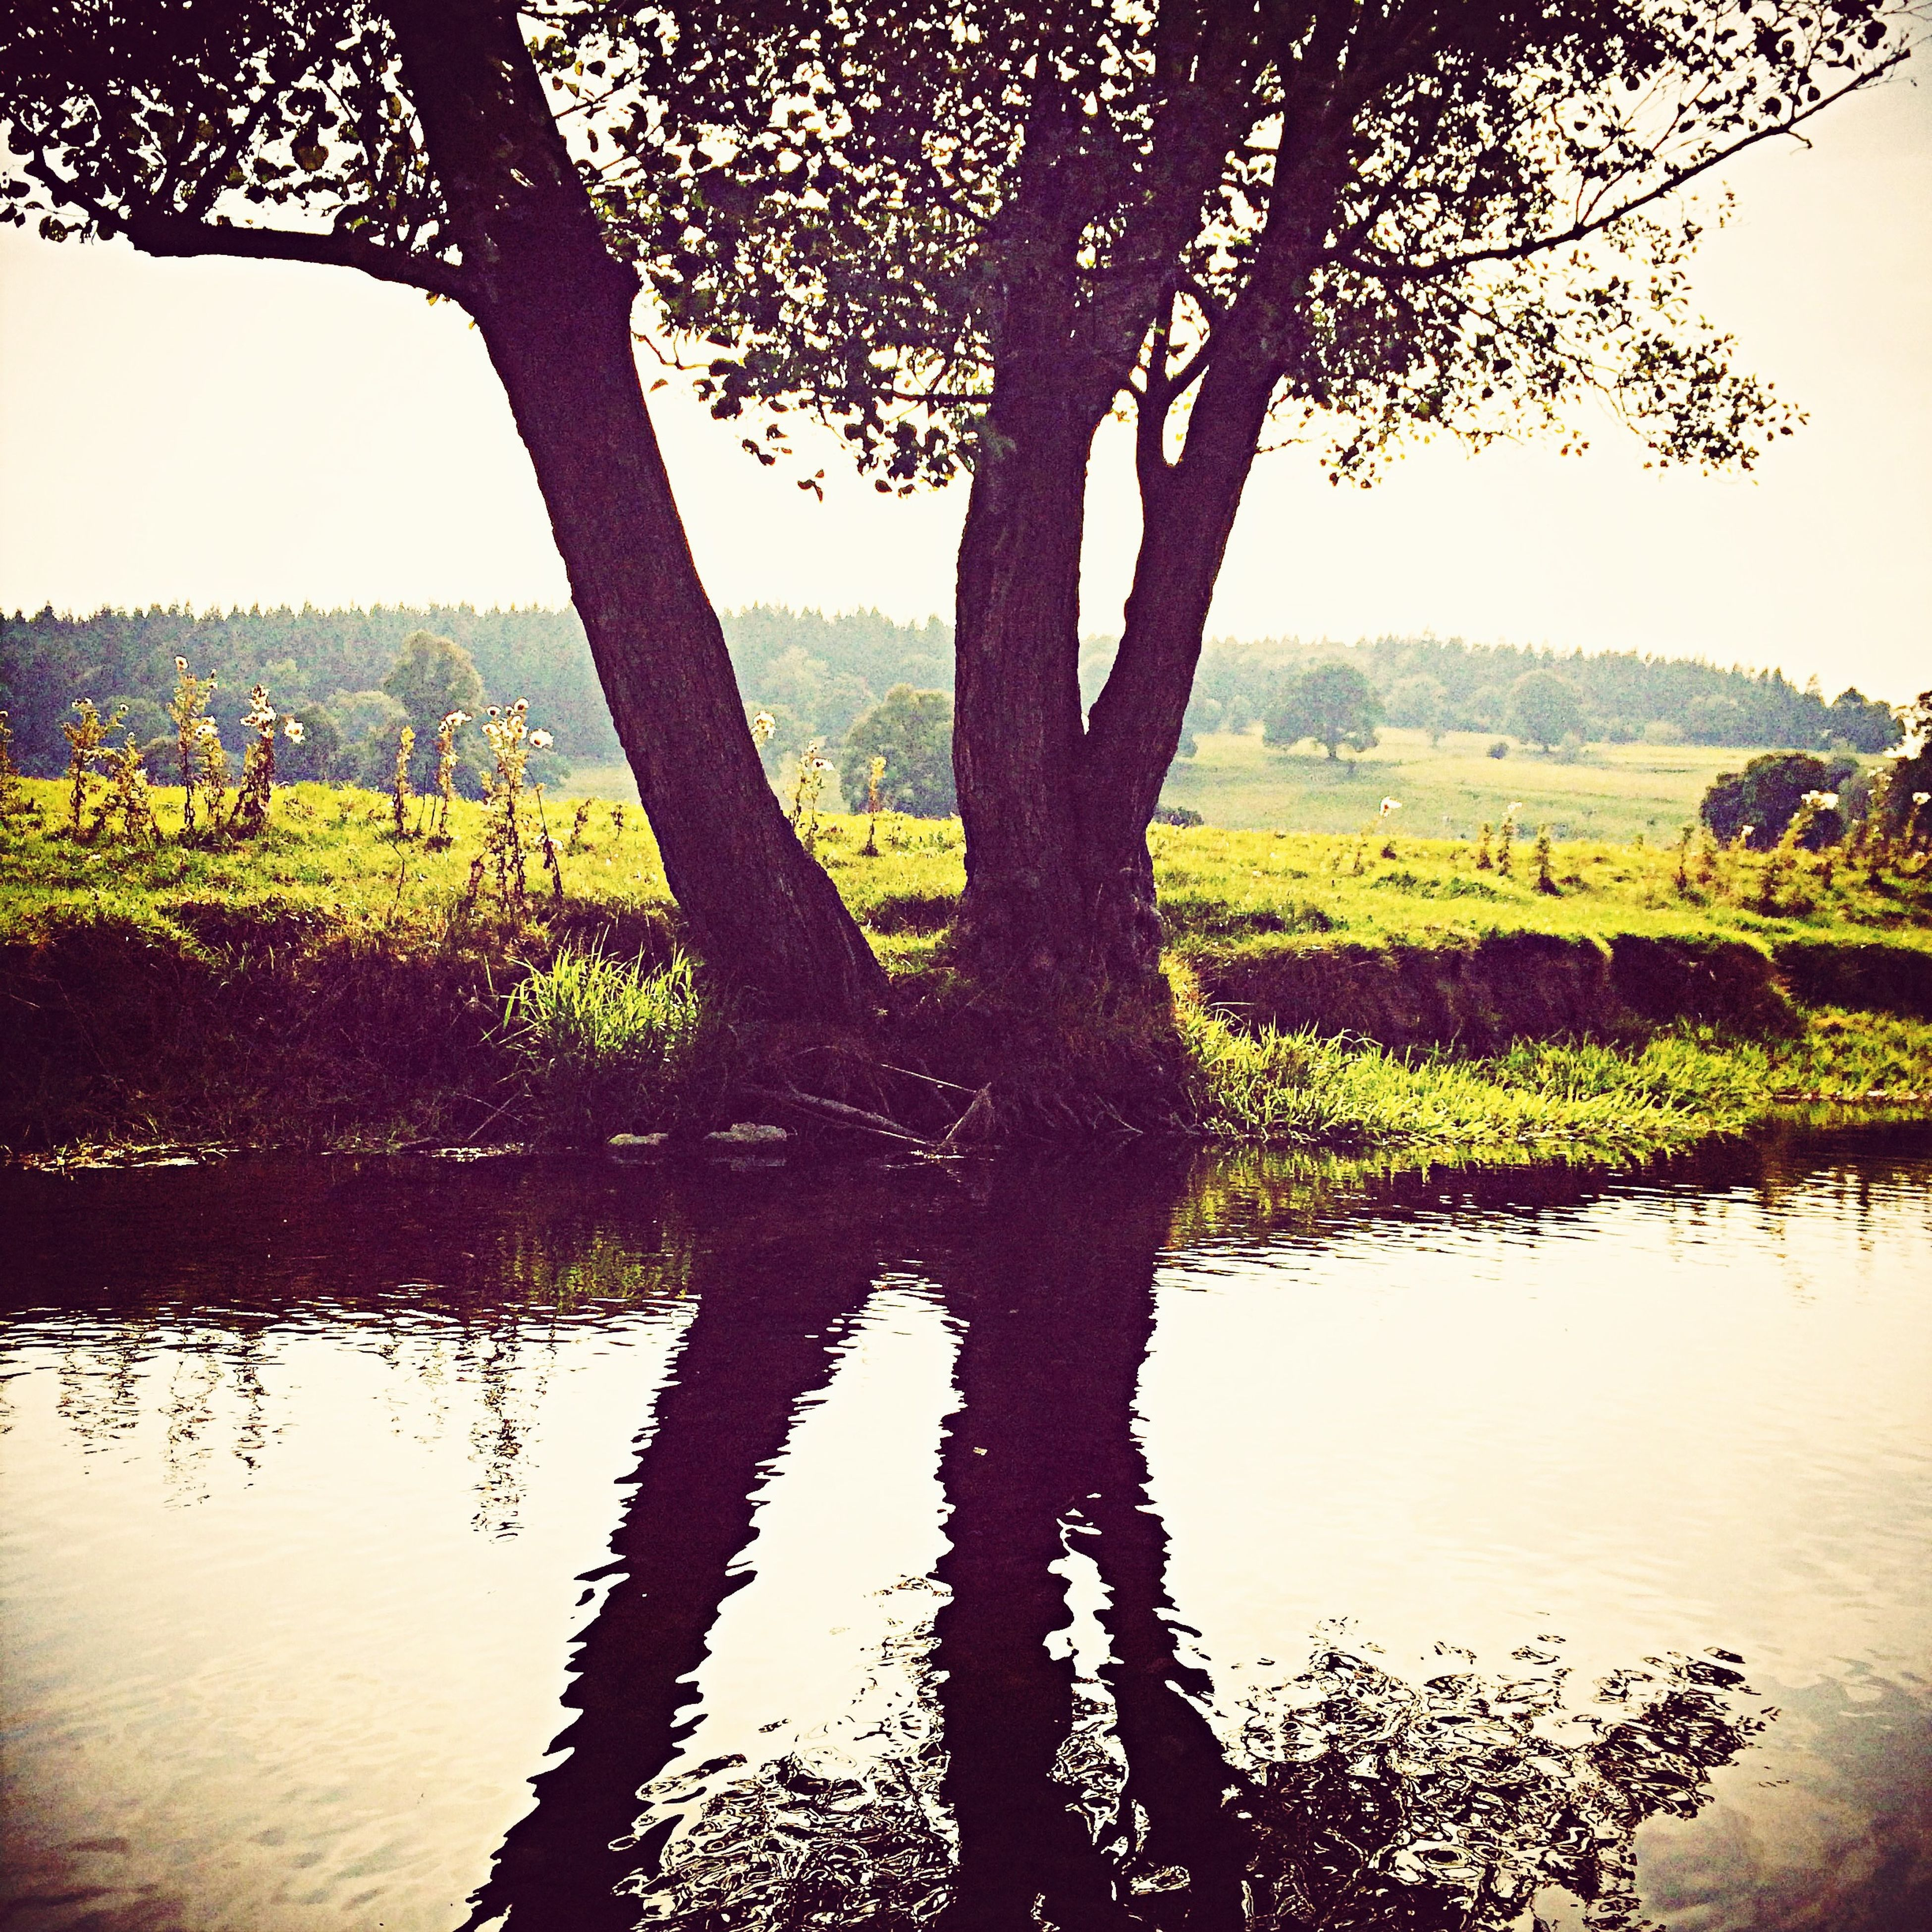 tree, tranquility, tranquil scene, water, lake, scenics, branch, beauty in nature, nature, growth, tree trunk, sky, reflection, idyllic, river, lakeshore, landscape, sunlight, sunset, no people